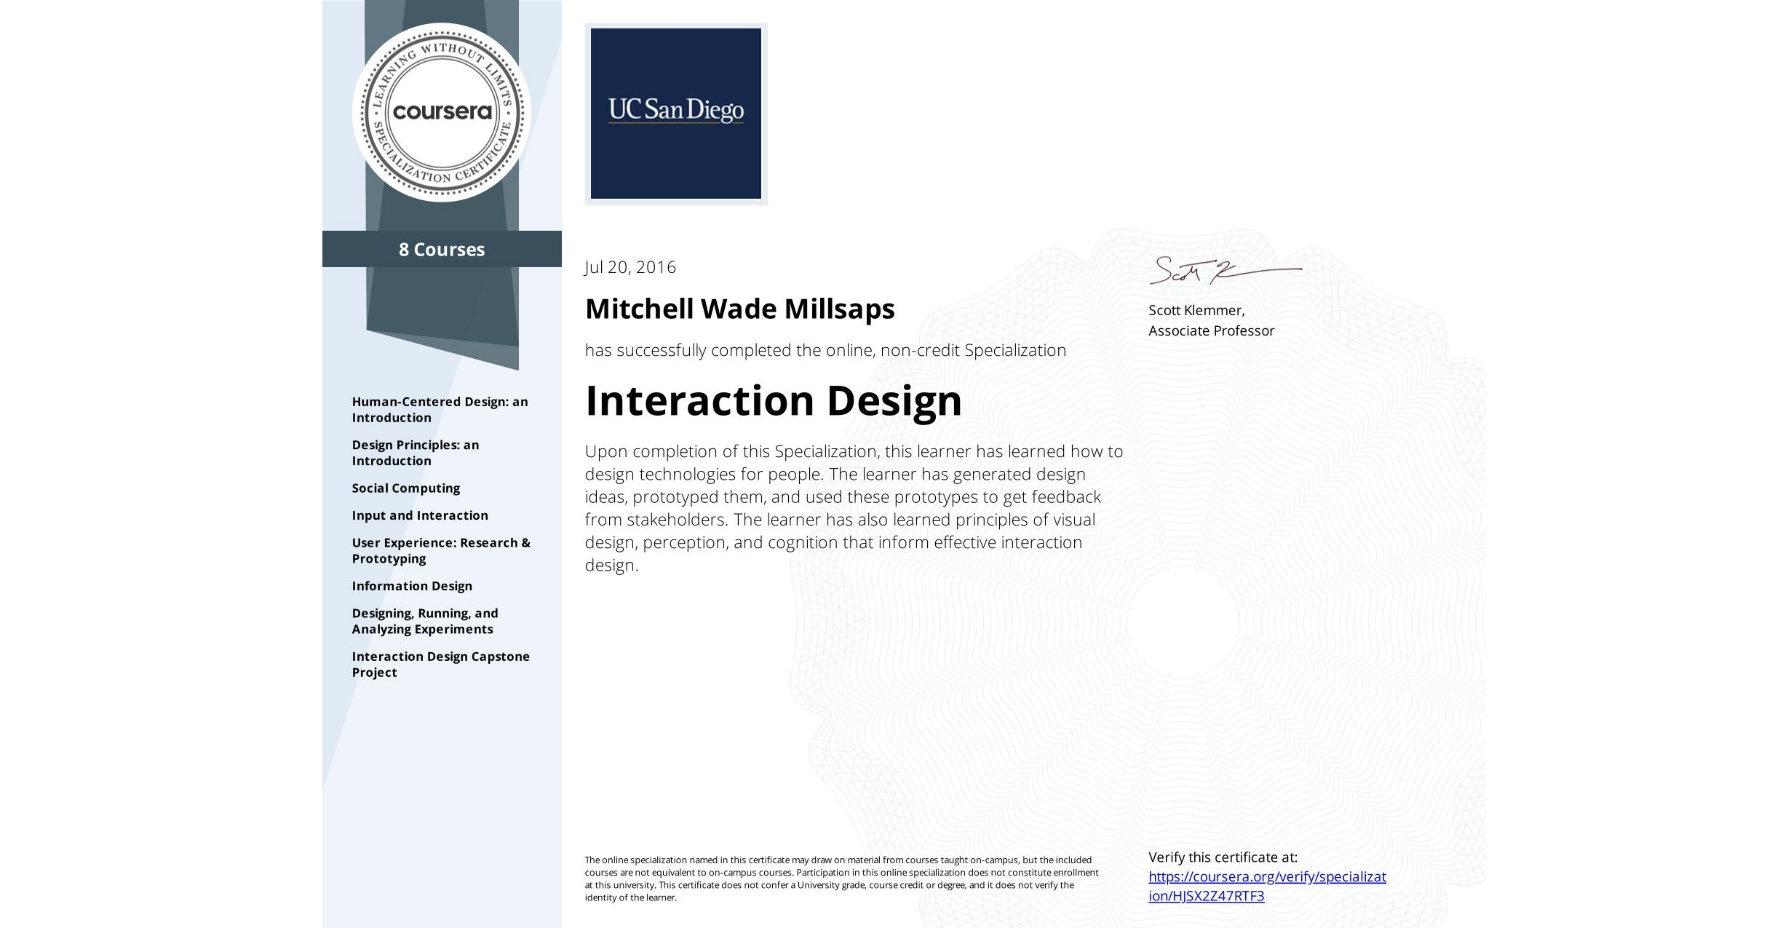 View certificate for Mitchell Wade Millsaps, Interaction Design, offered through Coursera. Upon completion of this Specialization, this learner has learned how to design technologies for people. The learner has generated design ideas, prototyped them, and used these prototypes to get feedback from stakeholders. The learner has also learned principles of visual design, perception, and cognition that inform effective interaction design.